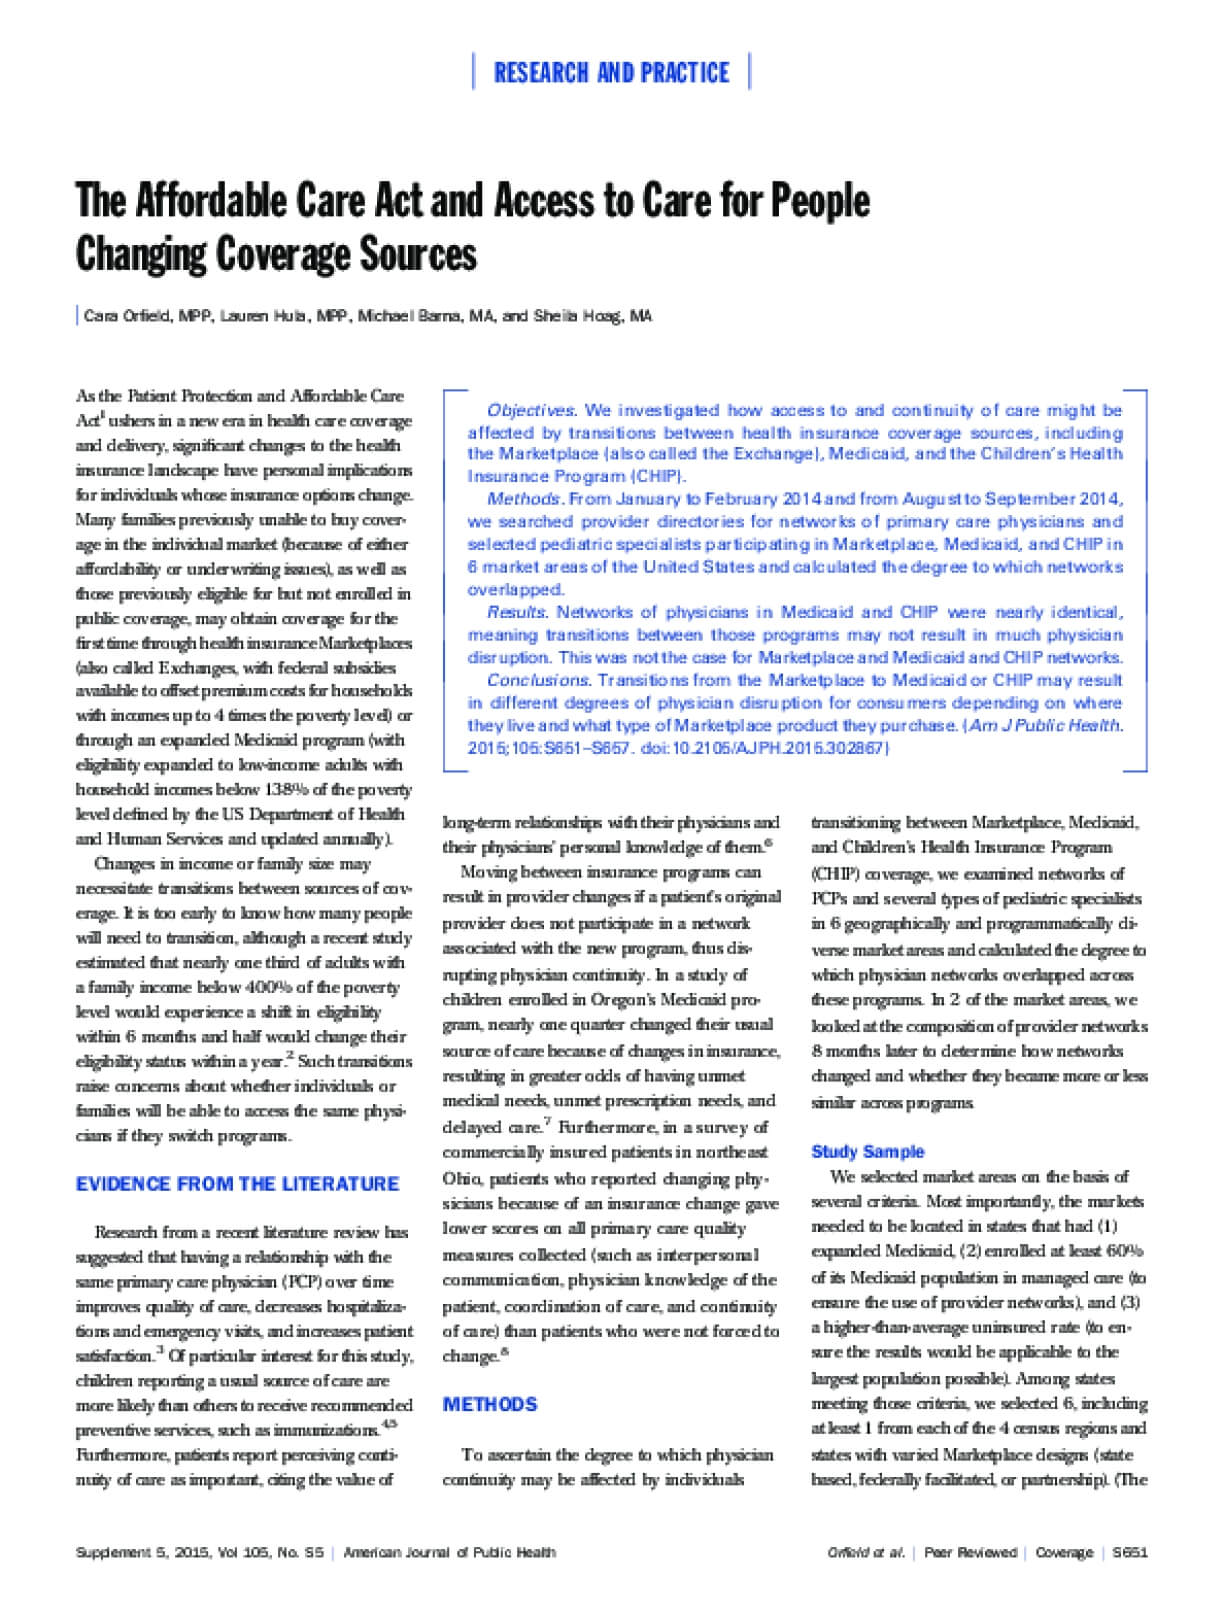 The Affordable Care Act and Access to Care for People Changing Coverage Sources